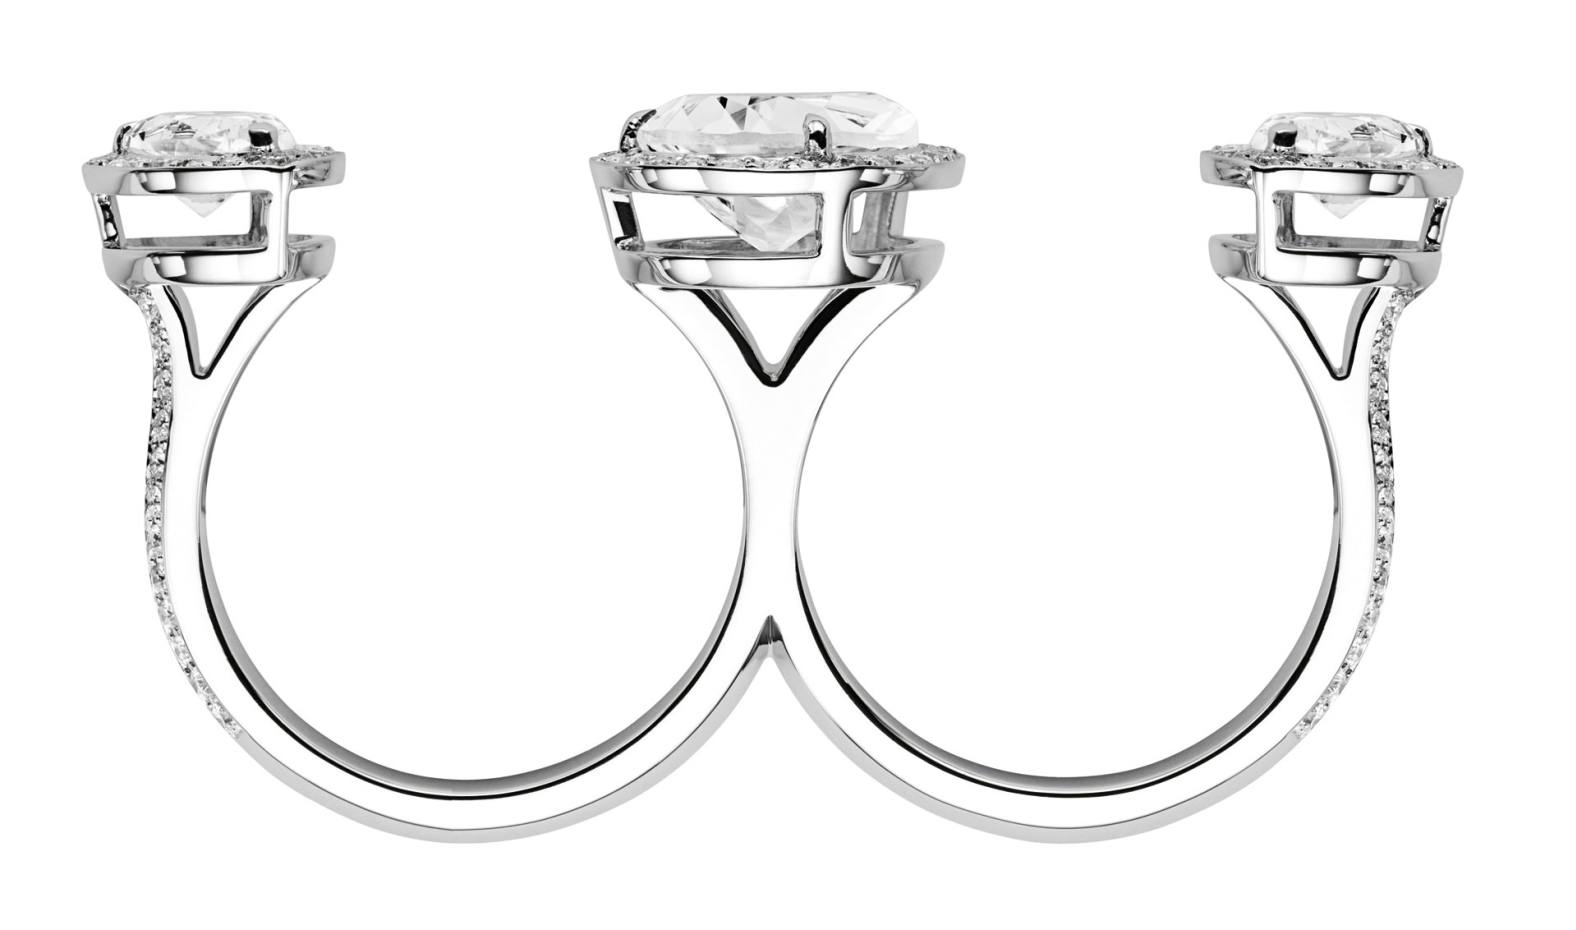 Atelier Swarovski by Penélope Cruz 18ct white-gold Lola Double Ring with three white topaz and Swarovski Created Diamonds surrounding the topaz and decorating the sides, £2,690